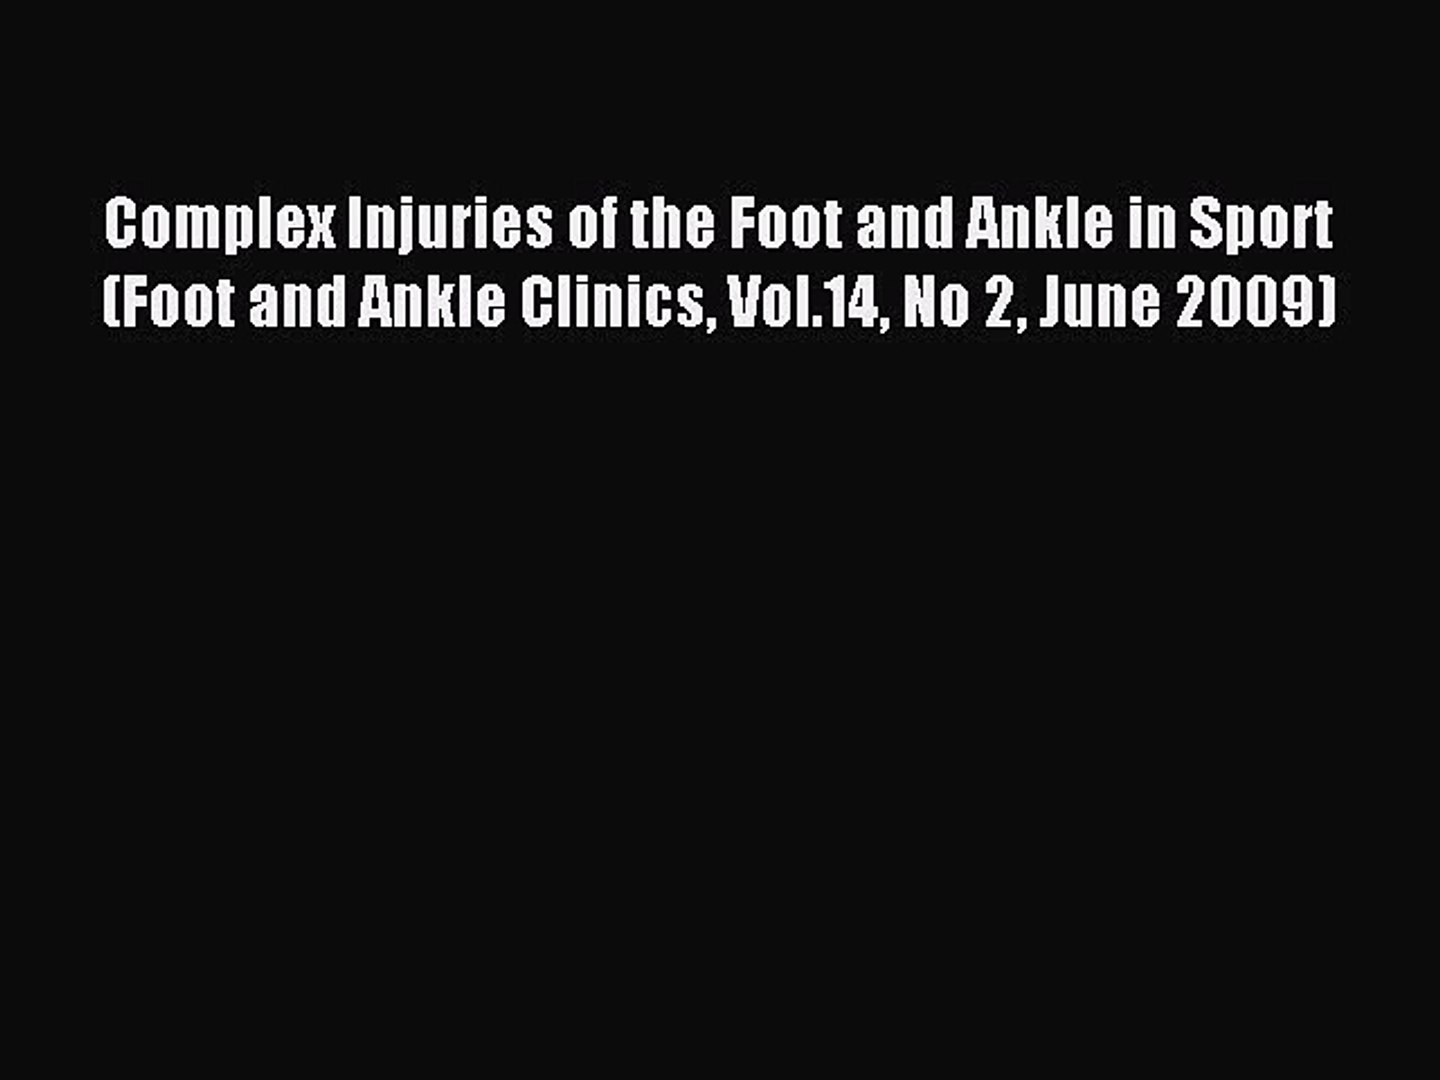 Download Complex Injuries of the Foot and Ankle in Sport (Foot and Ankle Clinics Vol.14 No